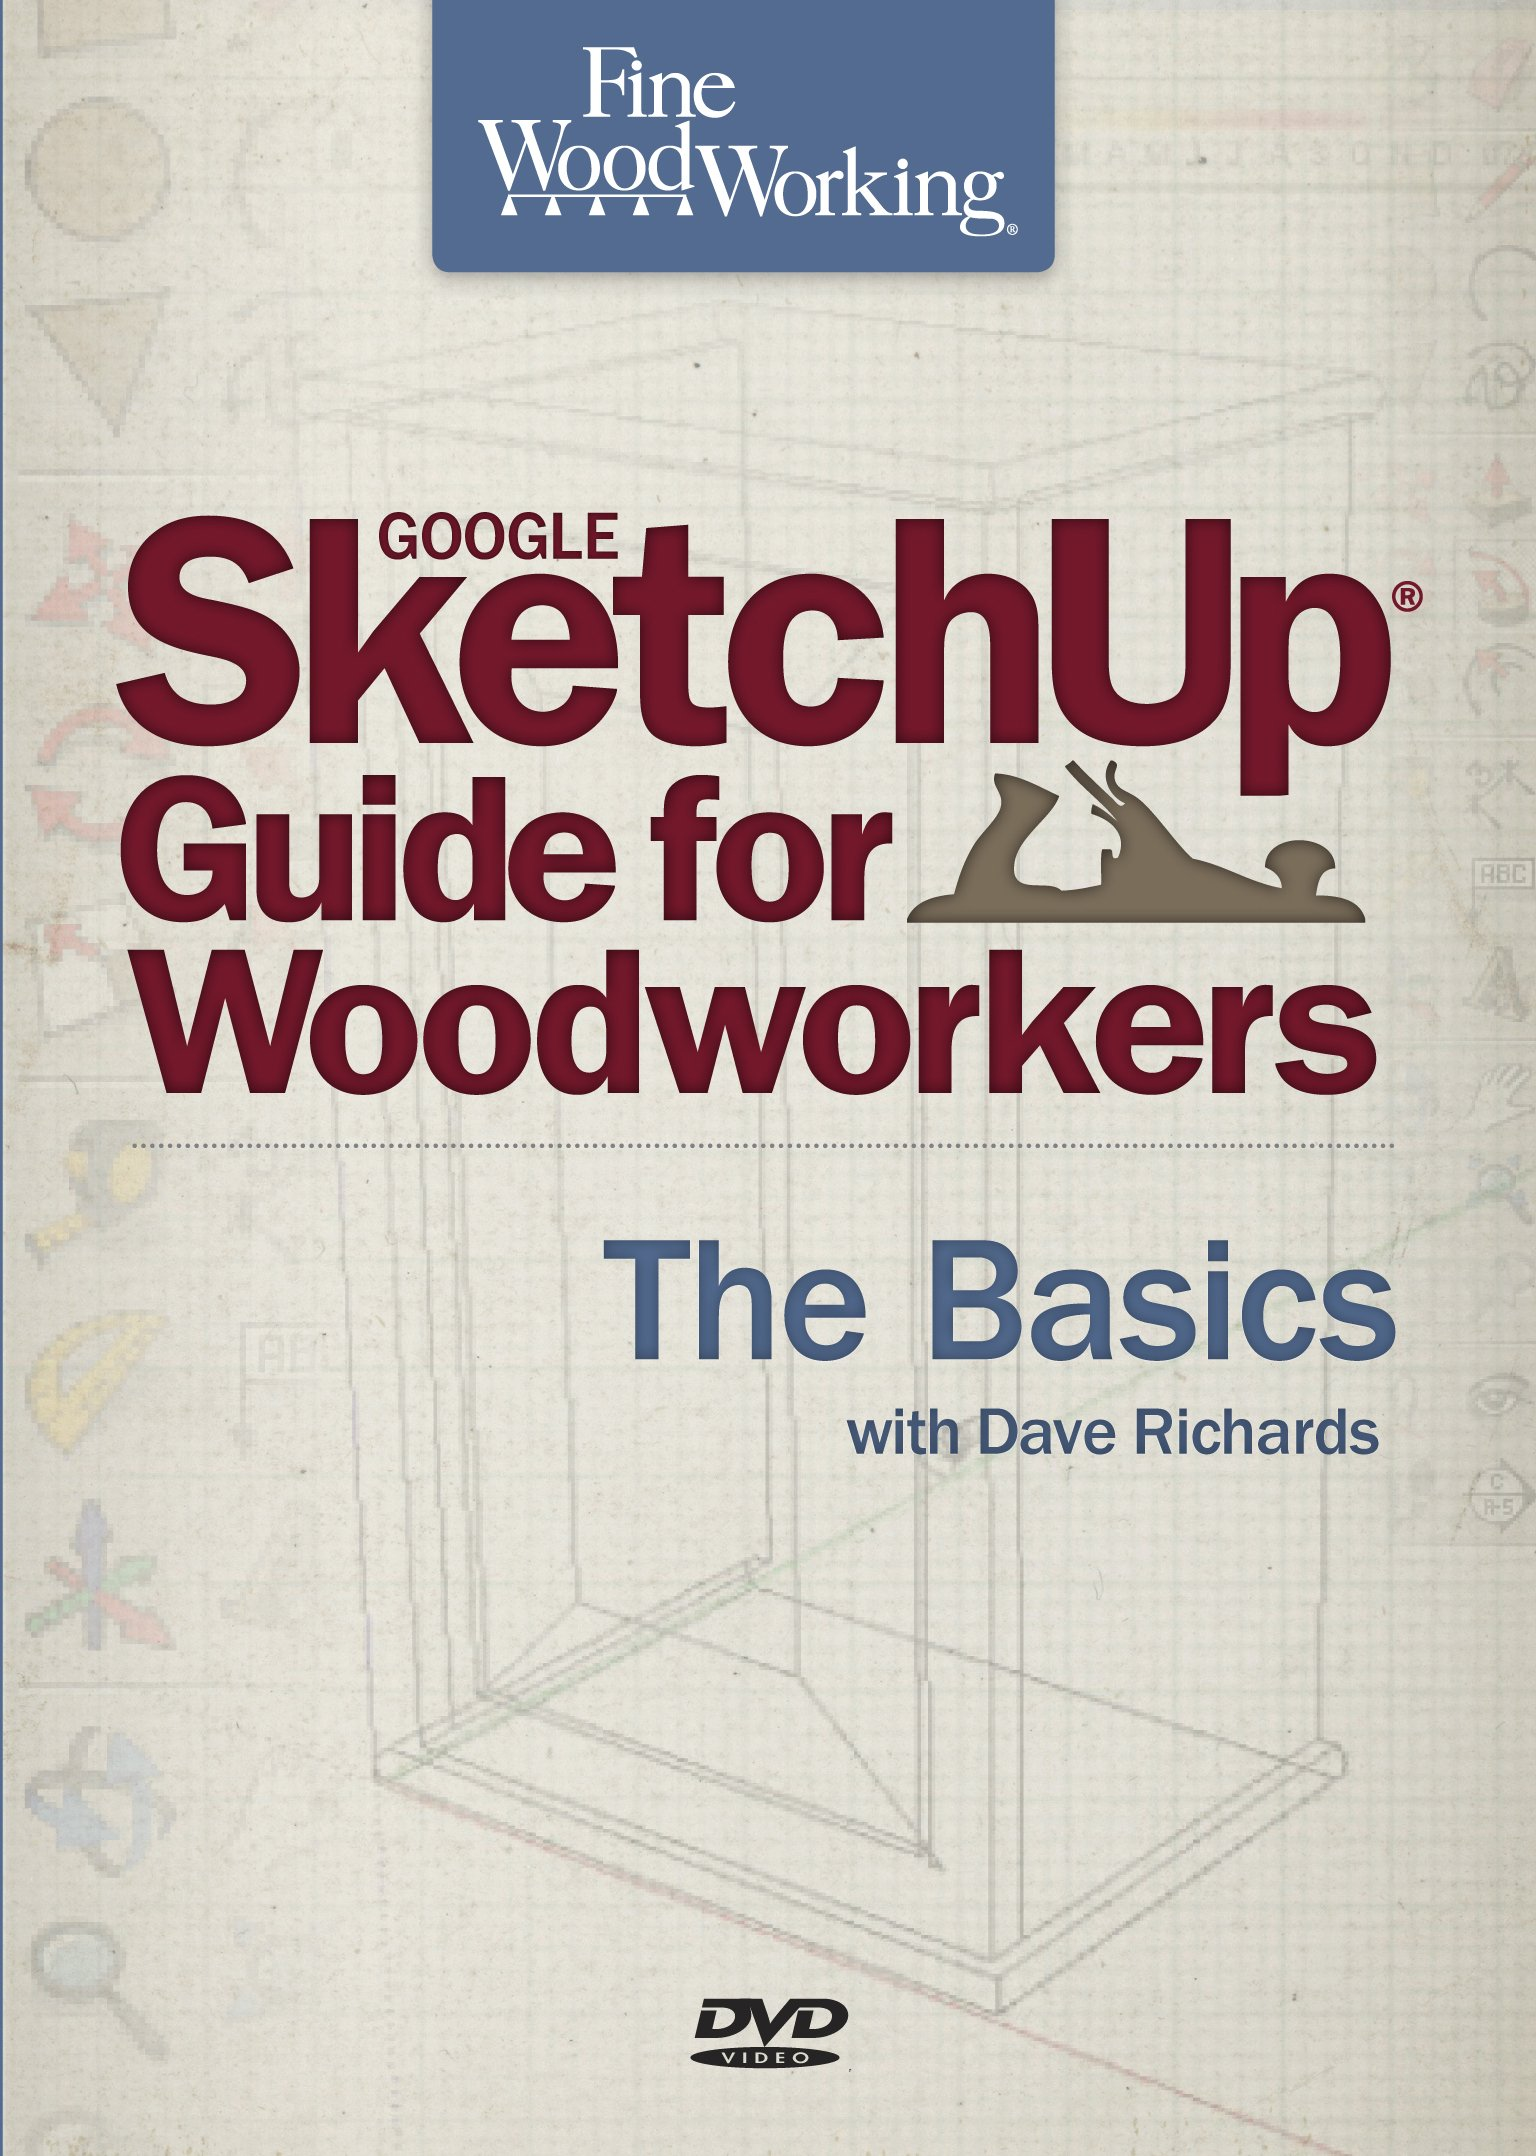 Dummies for sketchup pdf 2014